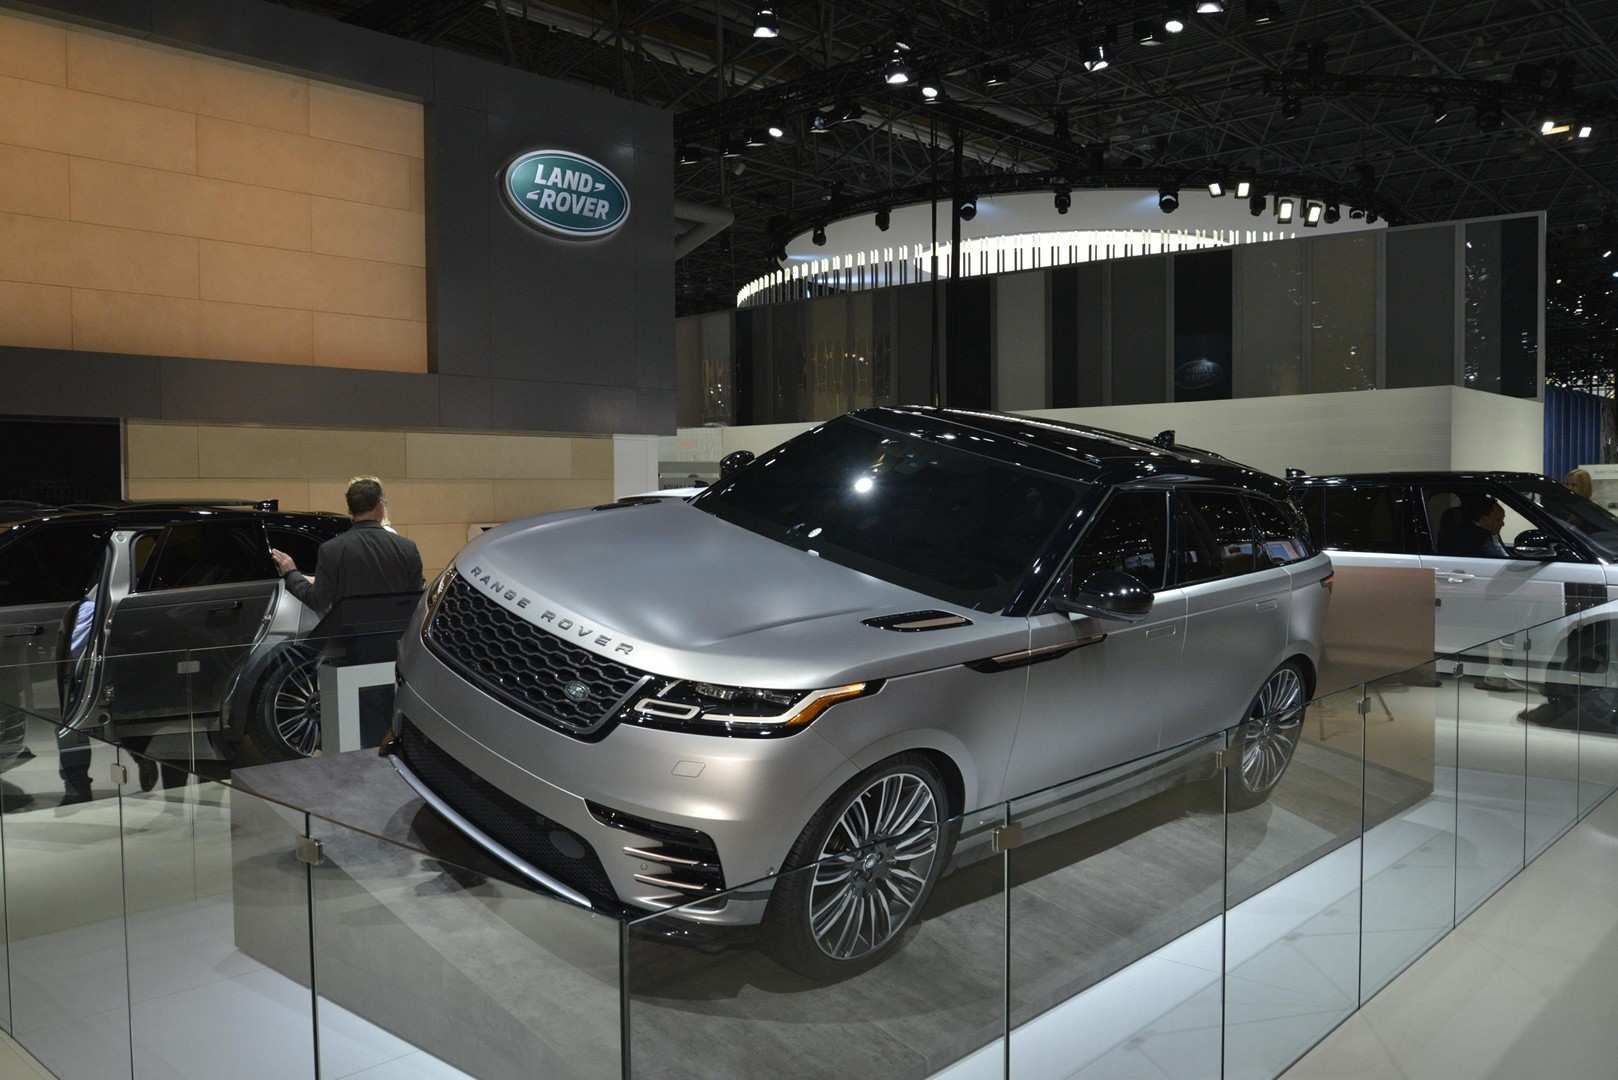 56 Gallery of 2020 Land Rover Road Rover Images with 2020 Land Rover Road Rover